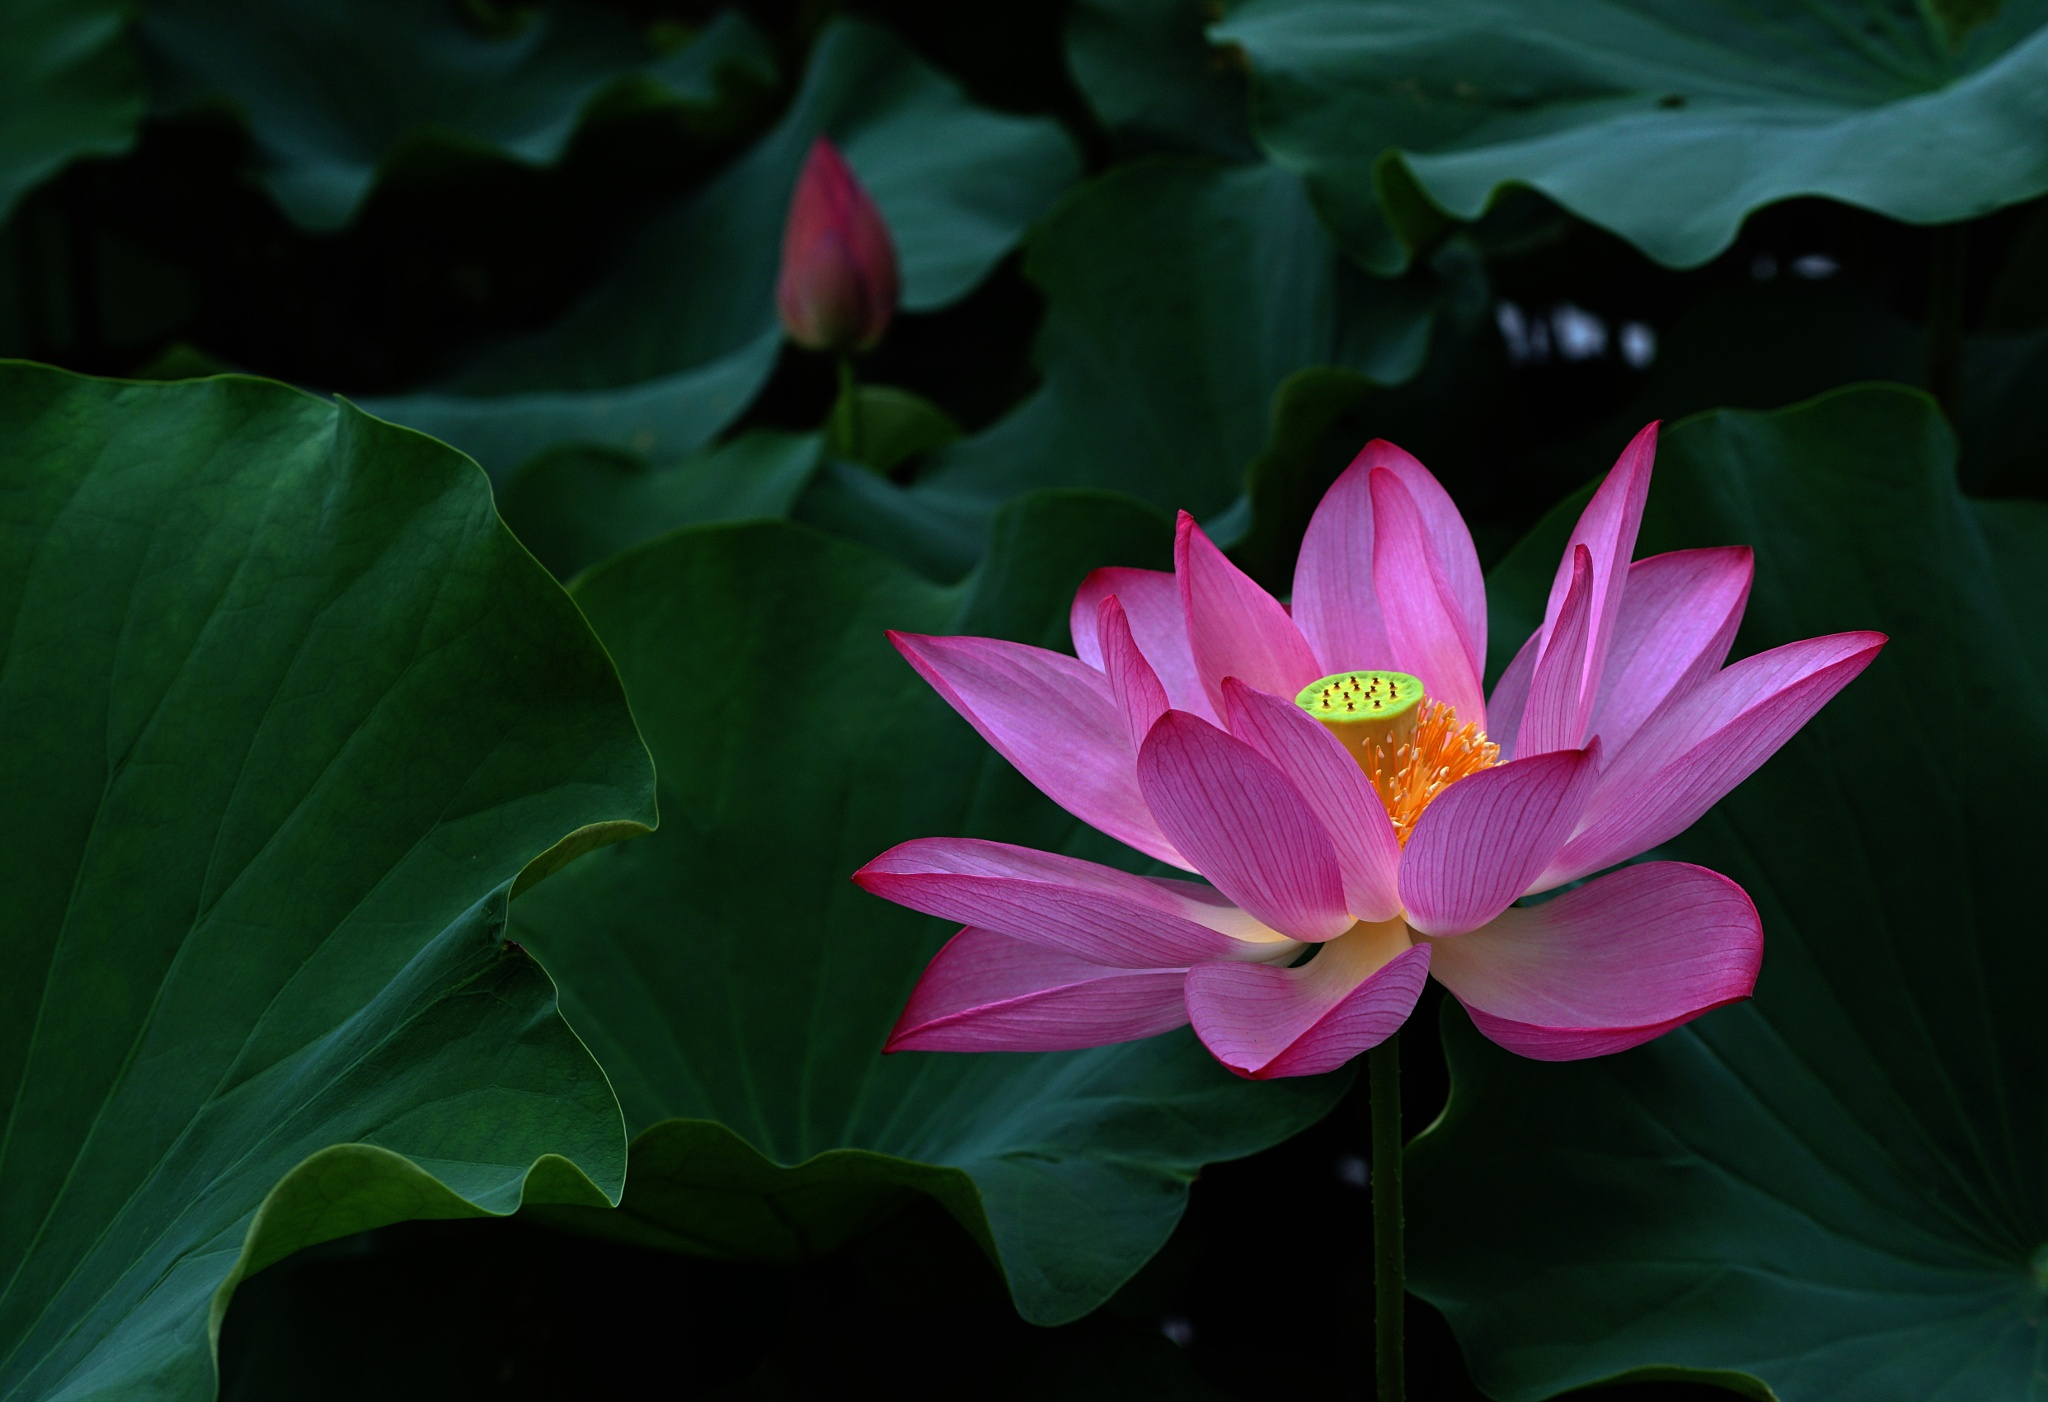 Beautiful Pink Lotus by Shermancheang